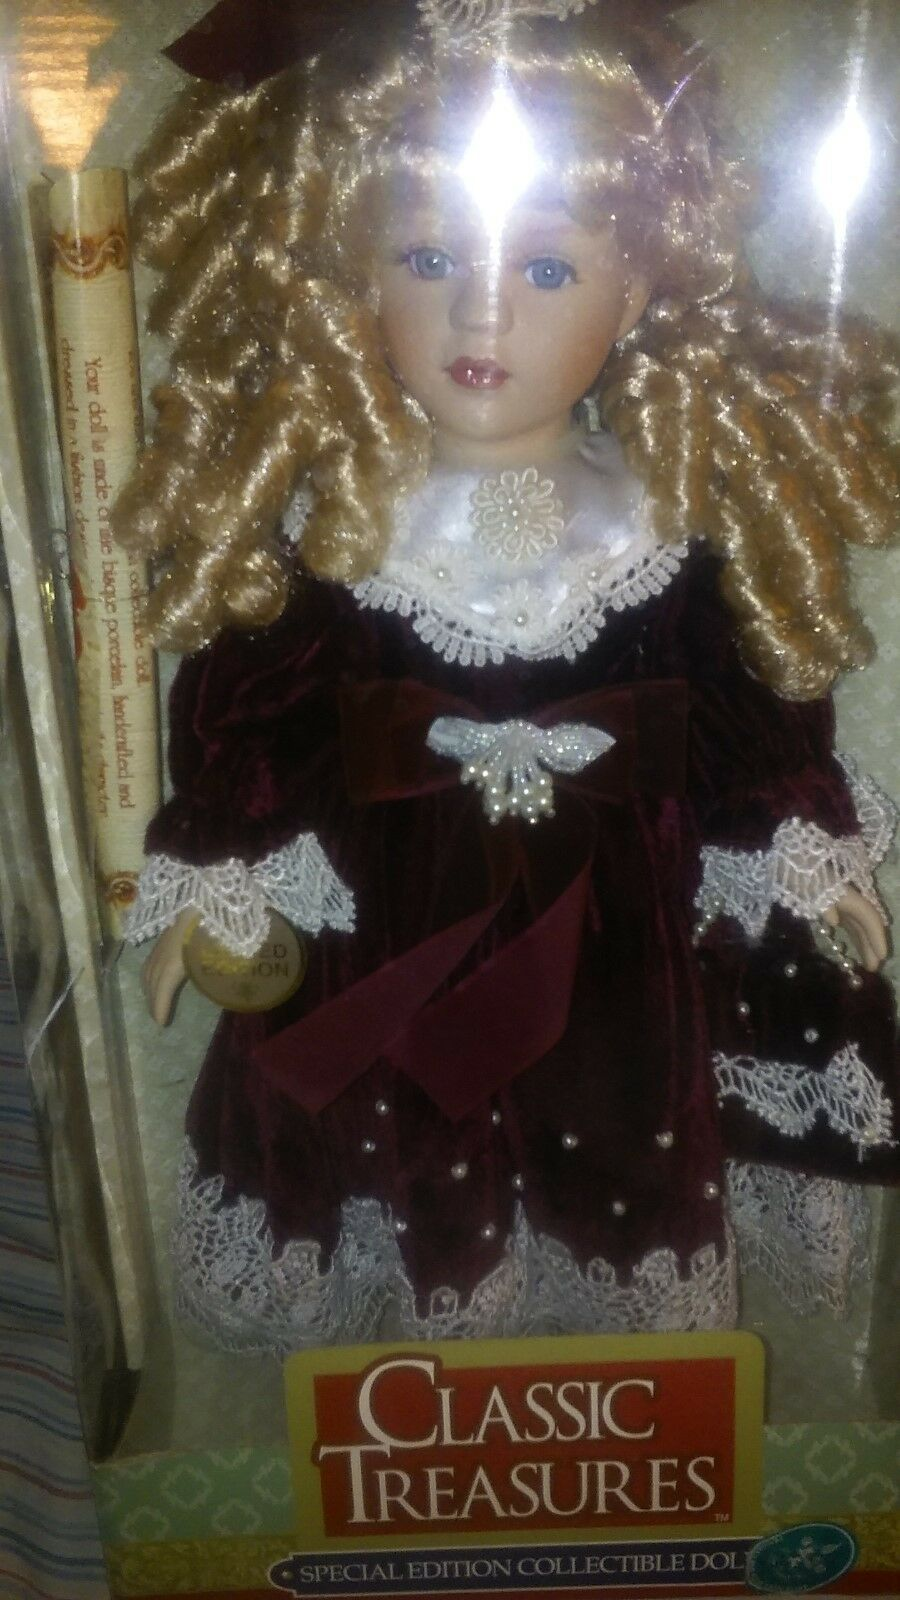 PORCELAIN Treasure SPECIAL EDITION Collectible Dolls GENUINE Bisque